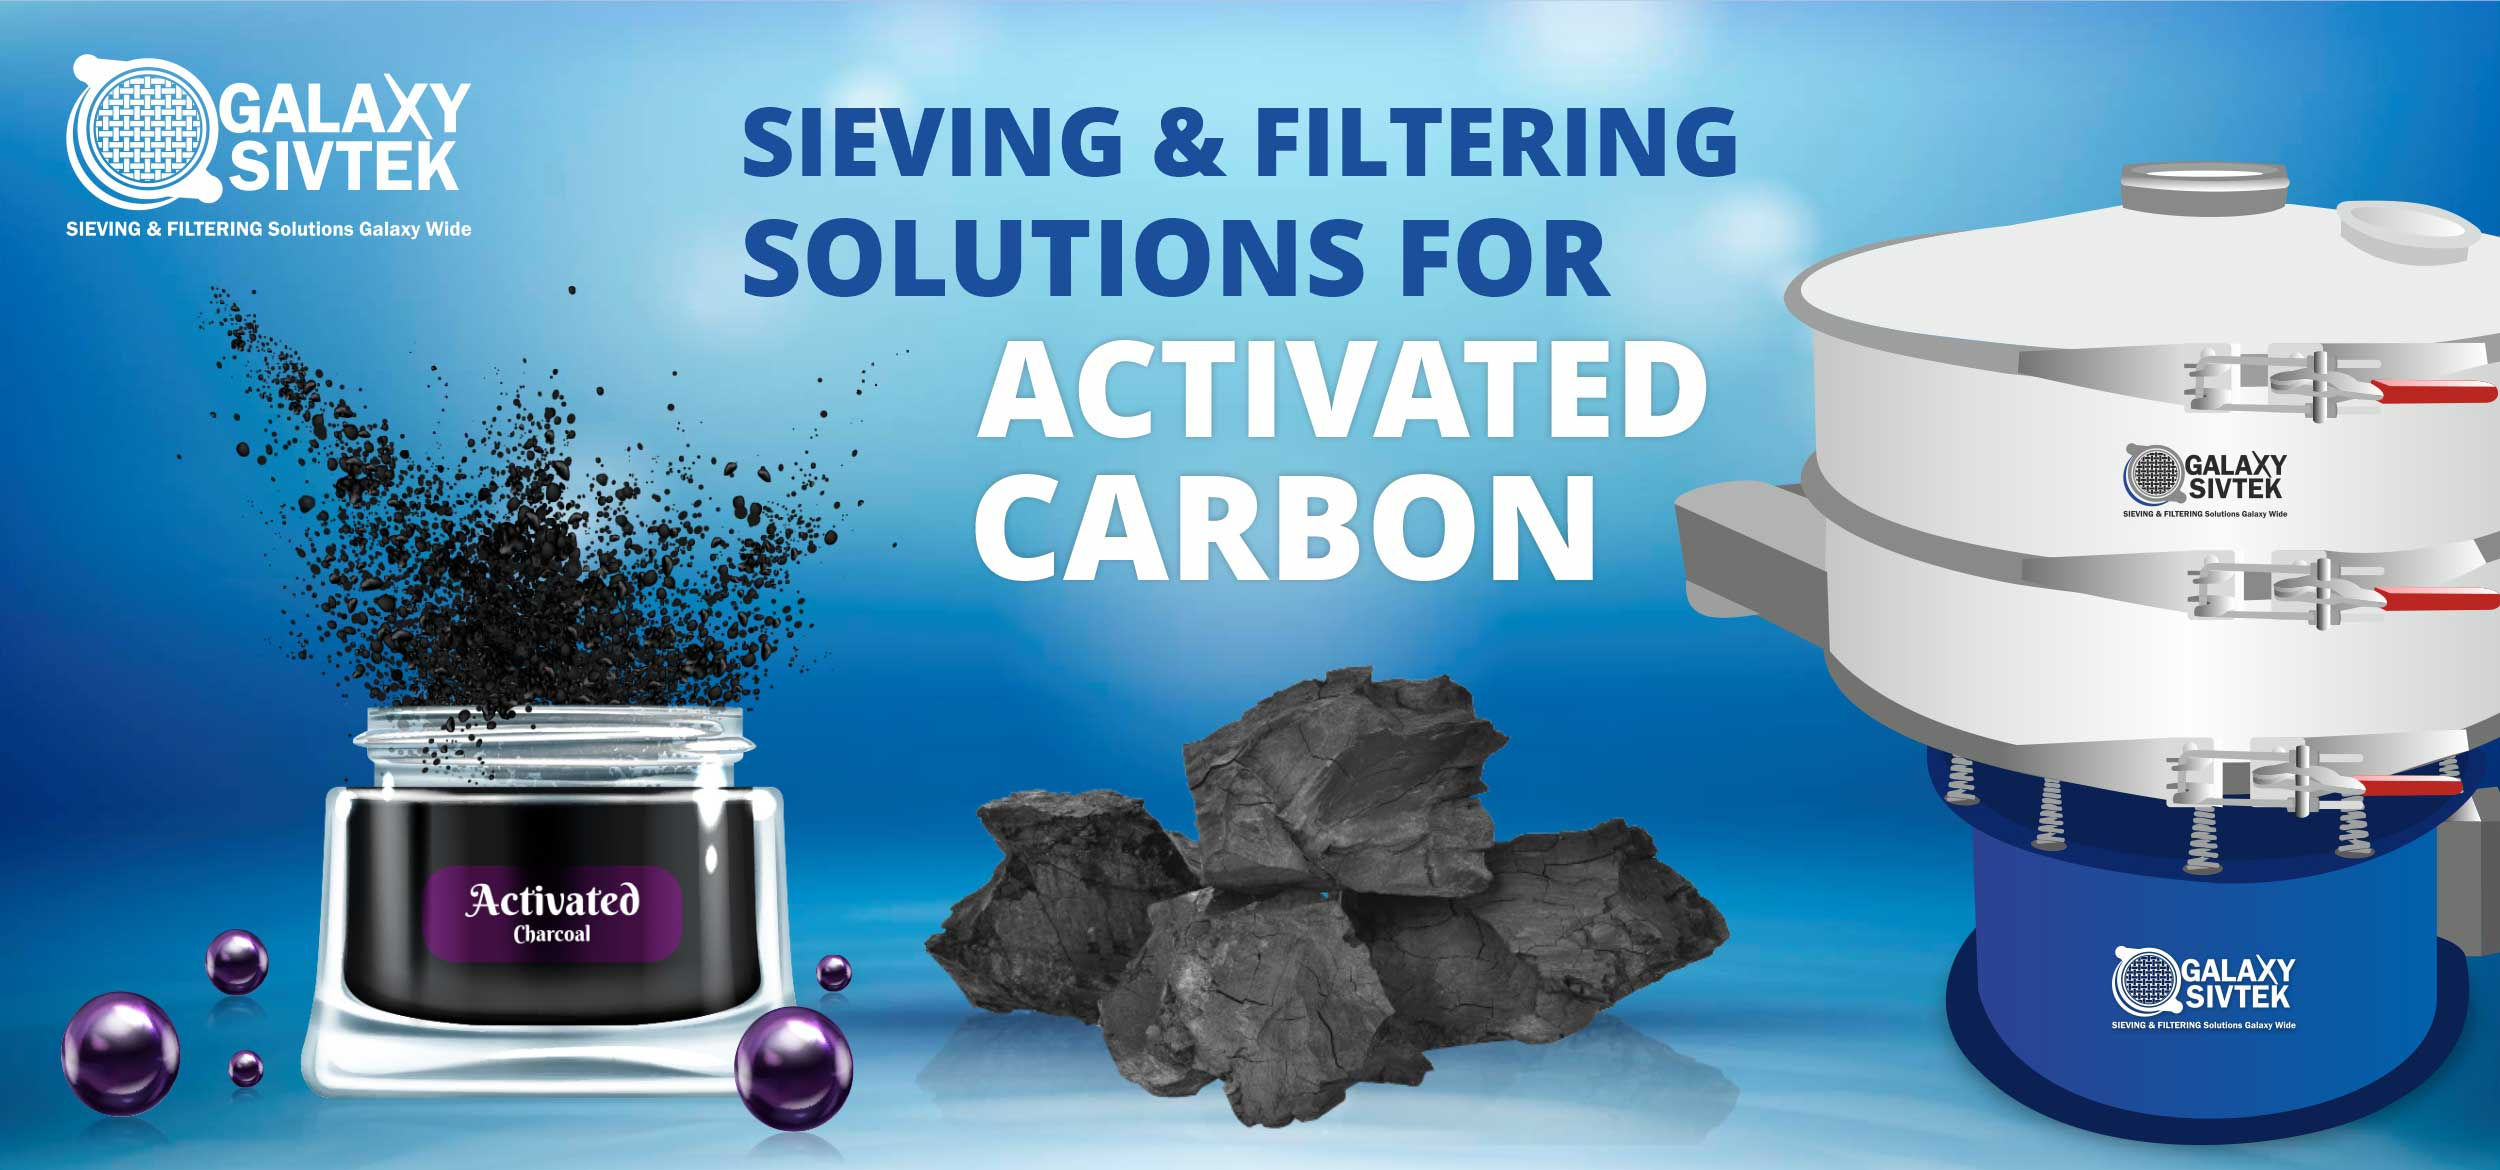 activated-carbon-sieving-solutions